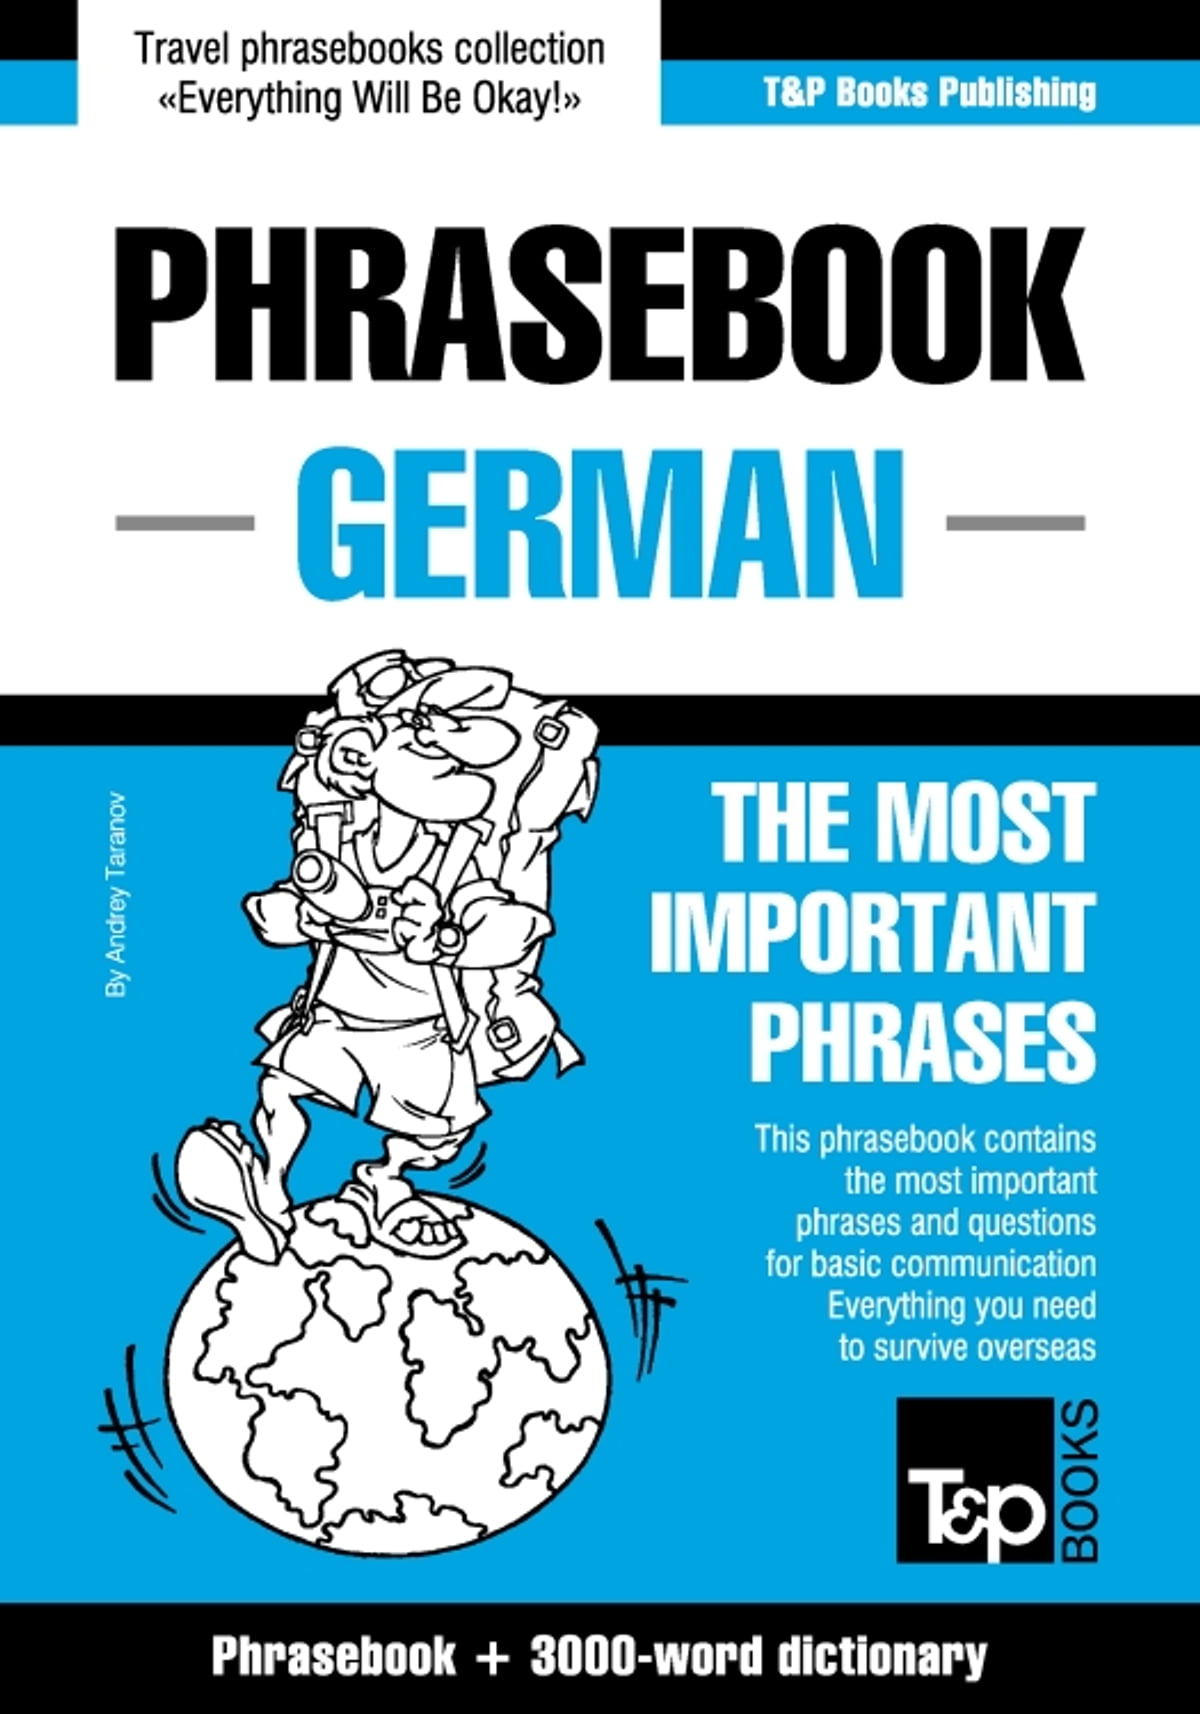 English german phrasebook and 3000 word topical vocabulary ebook english german phrasebook and 3000 word topical vocabulary ebook by andrey taranov 9781784927554 rakuten kobo kristyandbryce Gallery